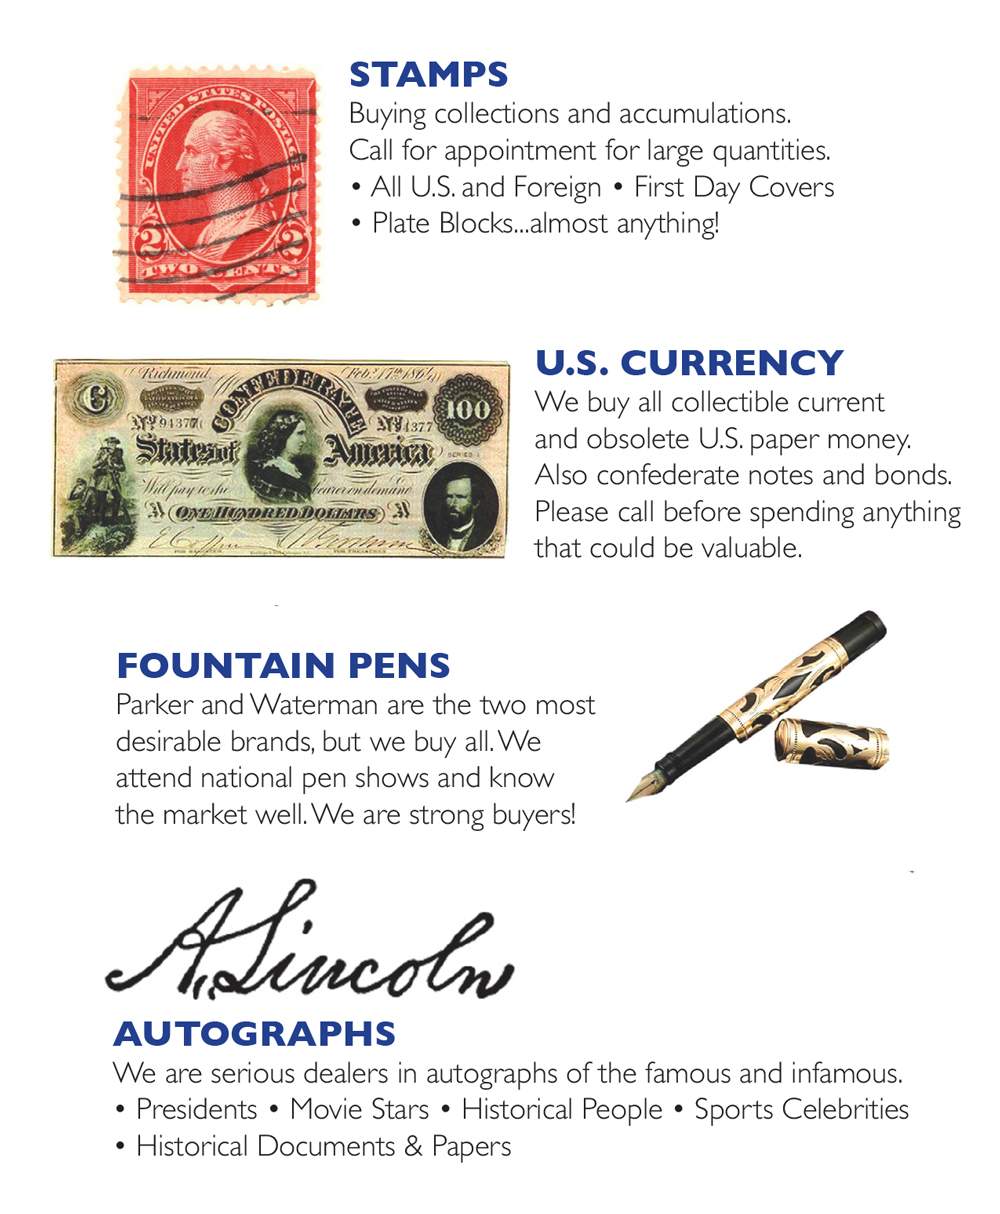 Stamps, Pens, Currency